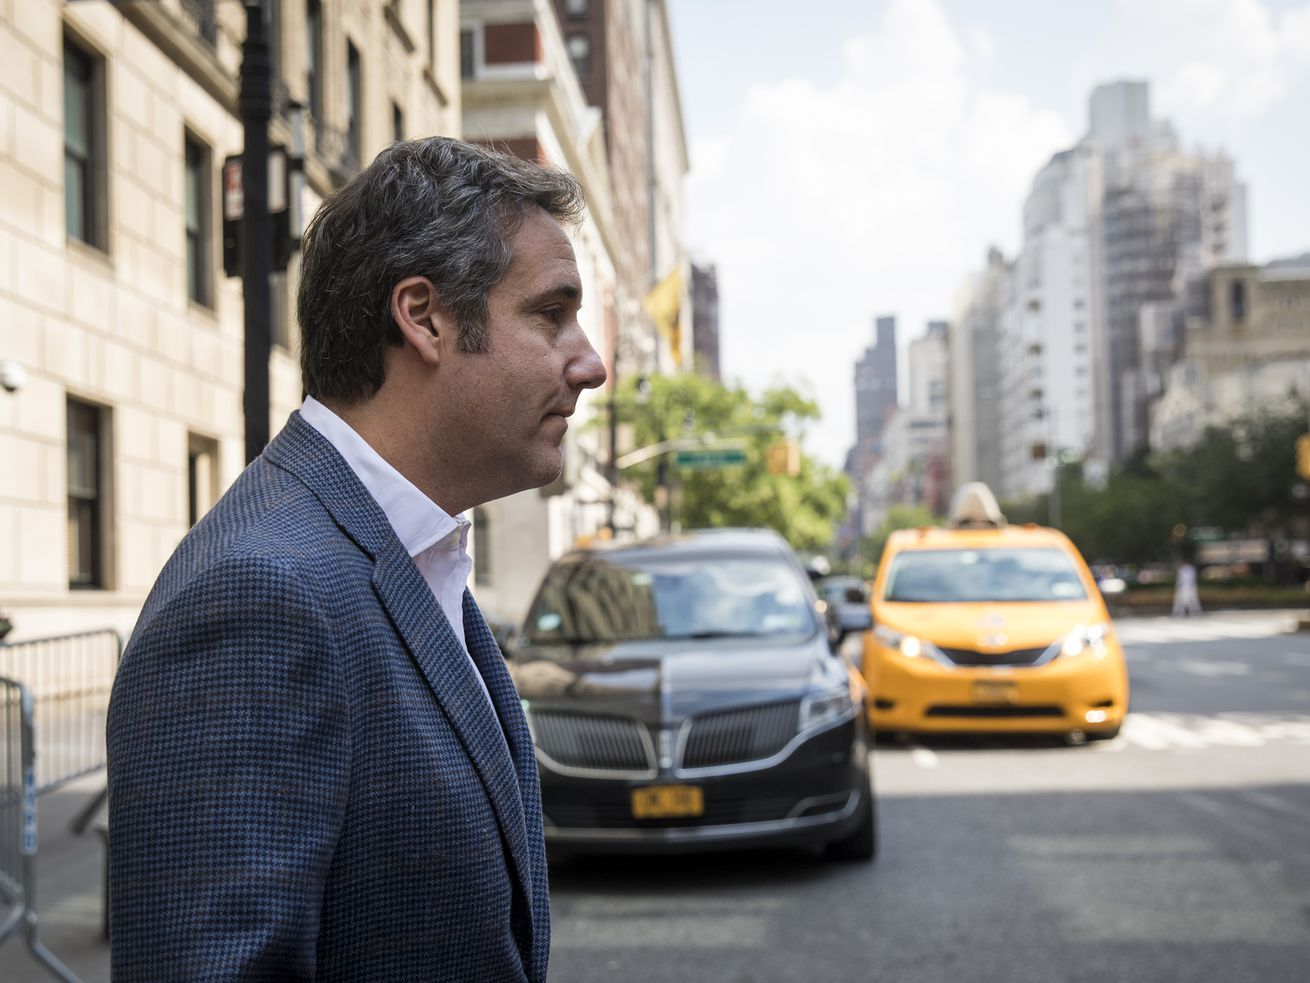 Michael Cohen, former personal attorney for President Donald Trump, exits the Loews Regency Hotel on July 27, 2018, in New York City.